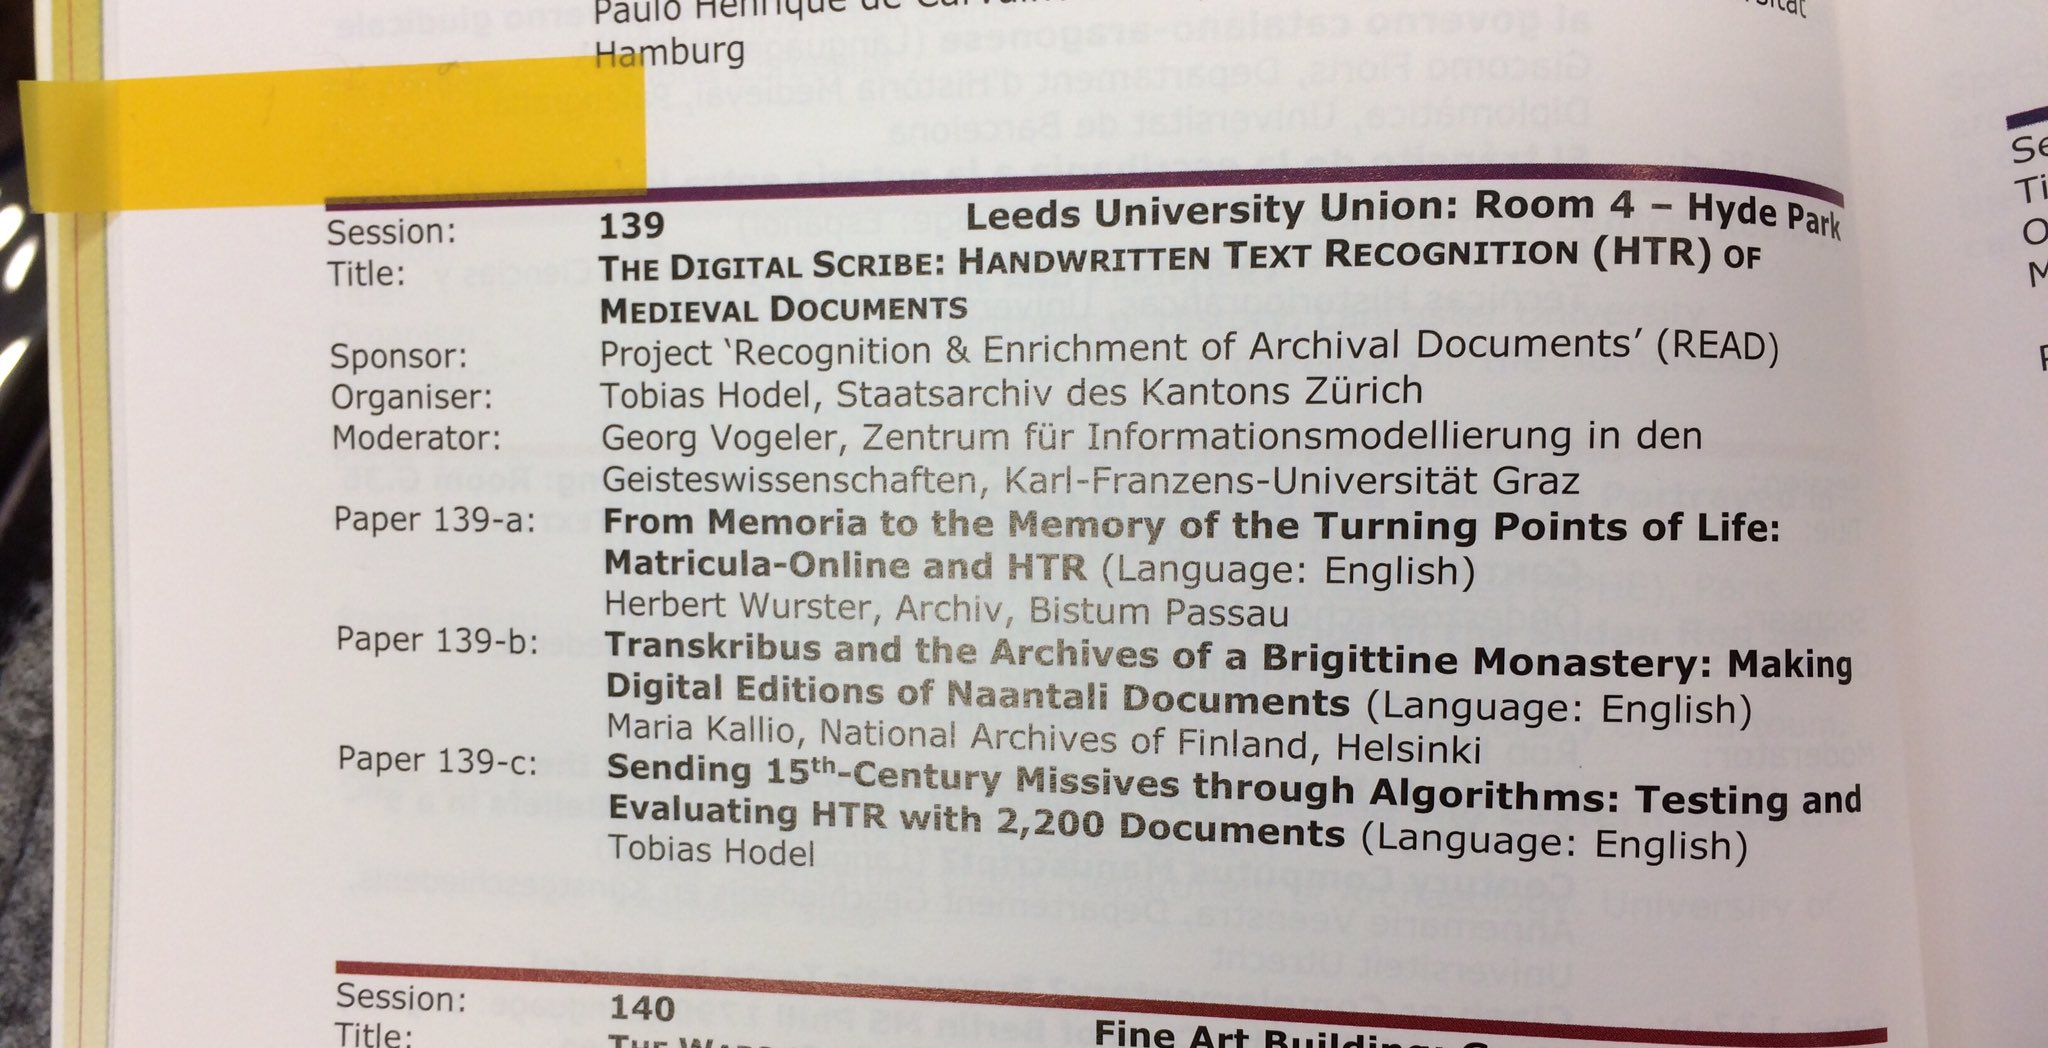 Gearing up for my 1st session of #imc2017 - looking forward to #s139 on 'The Digital Scribe' https://t.co/YXmMlZE8Wa